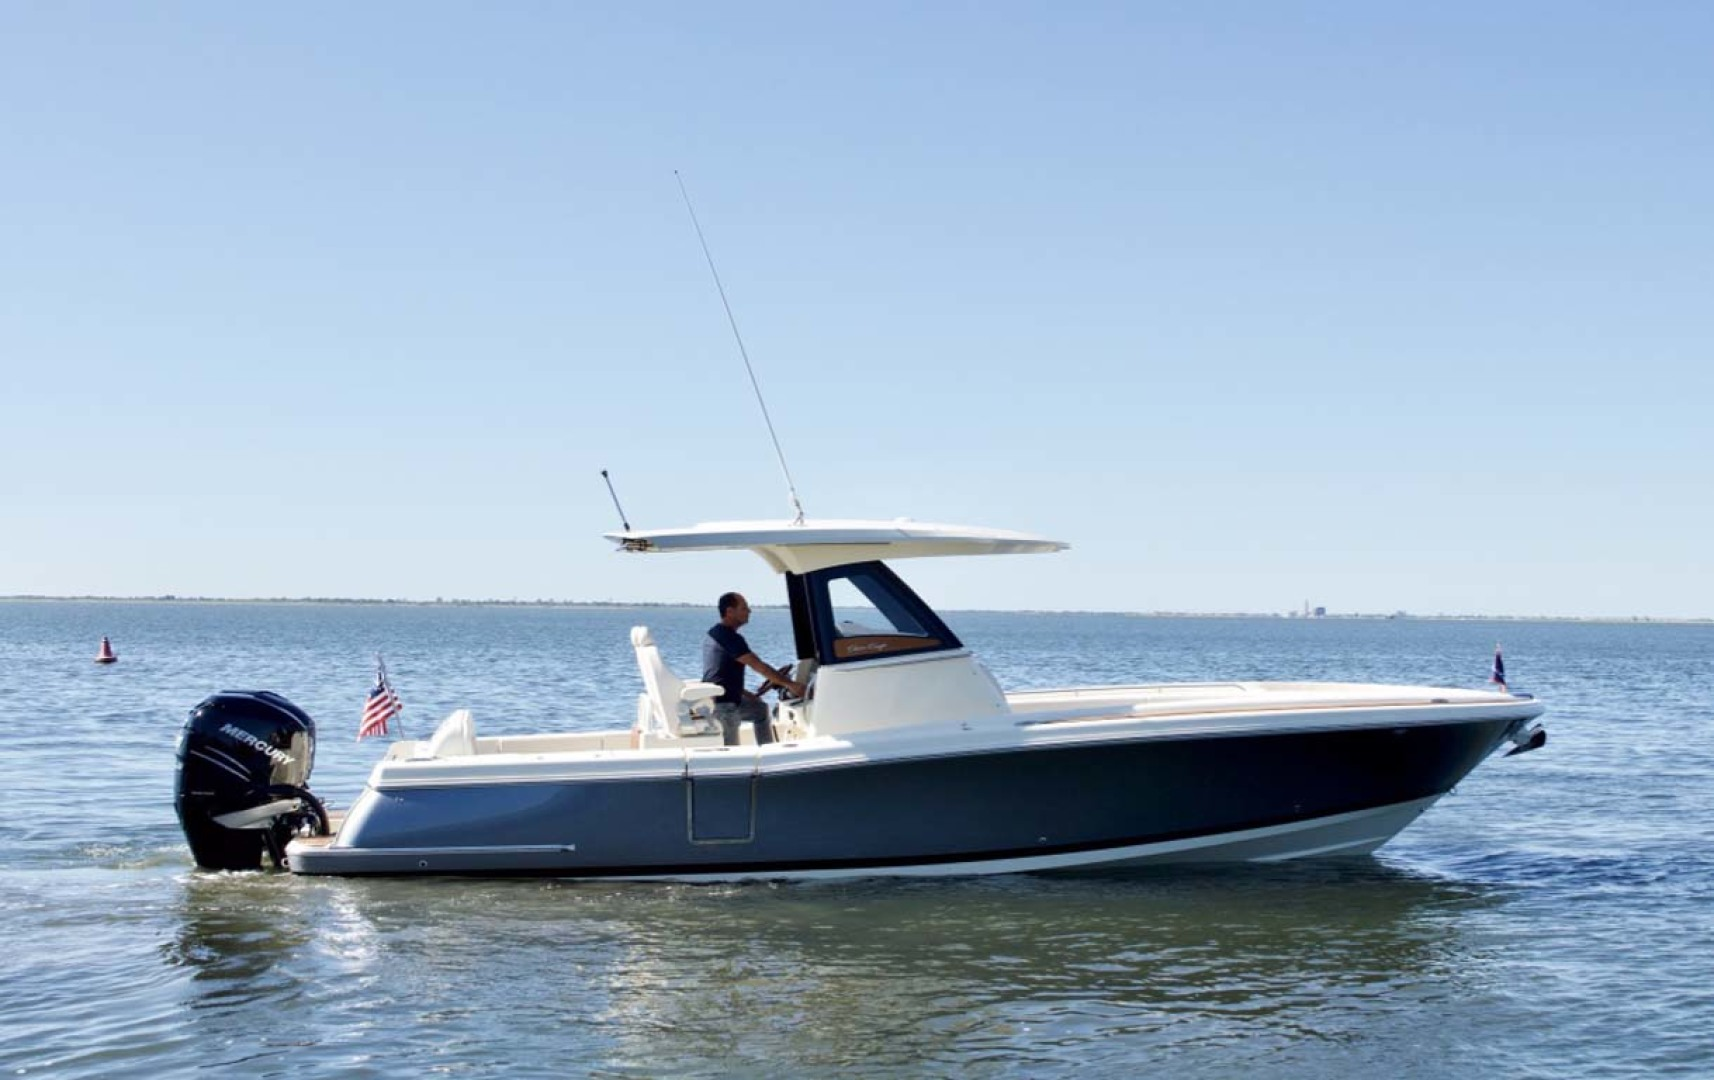 Chris-Craft-30 Catalina 2018-Blue Waters Long Island-New York-United States Starboard Profile-1228928 | Thumbnail